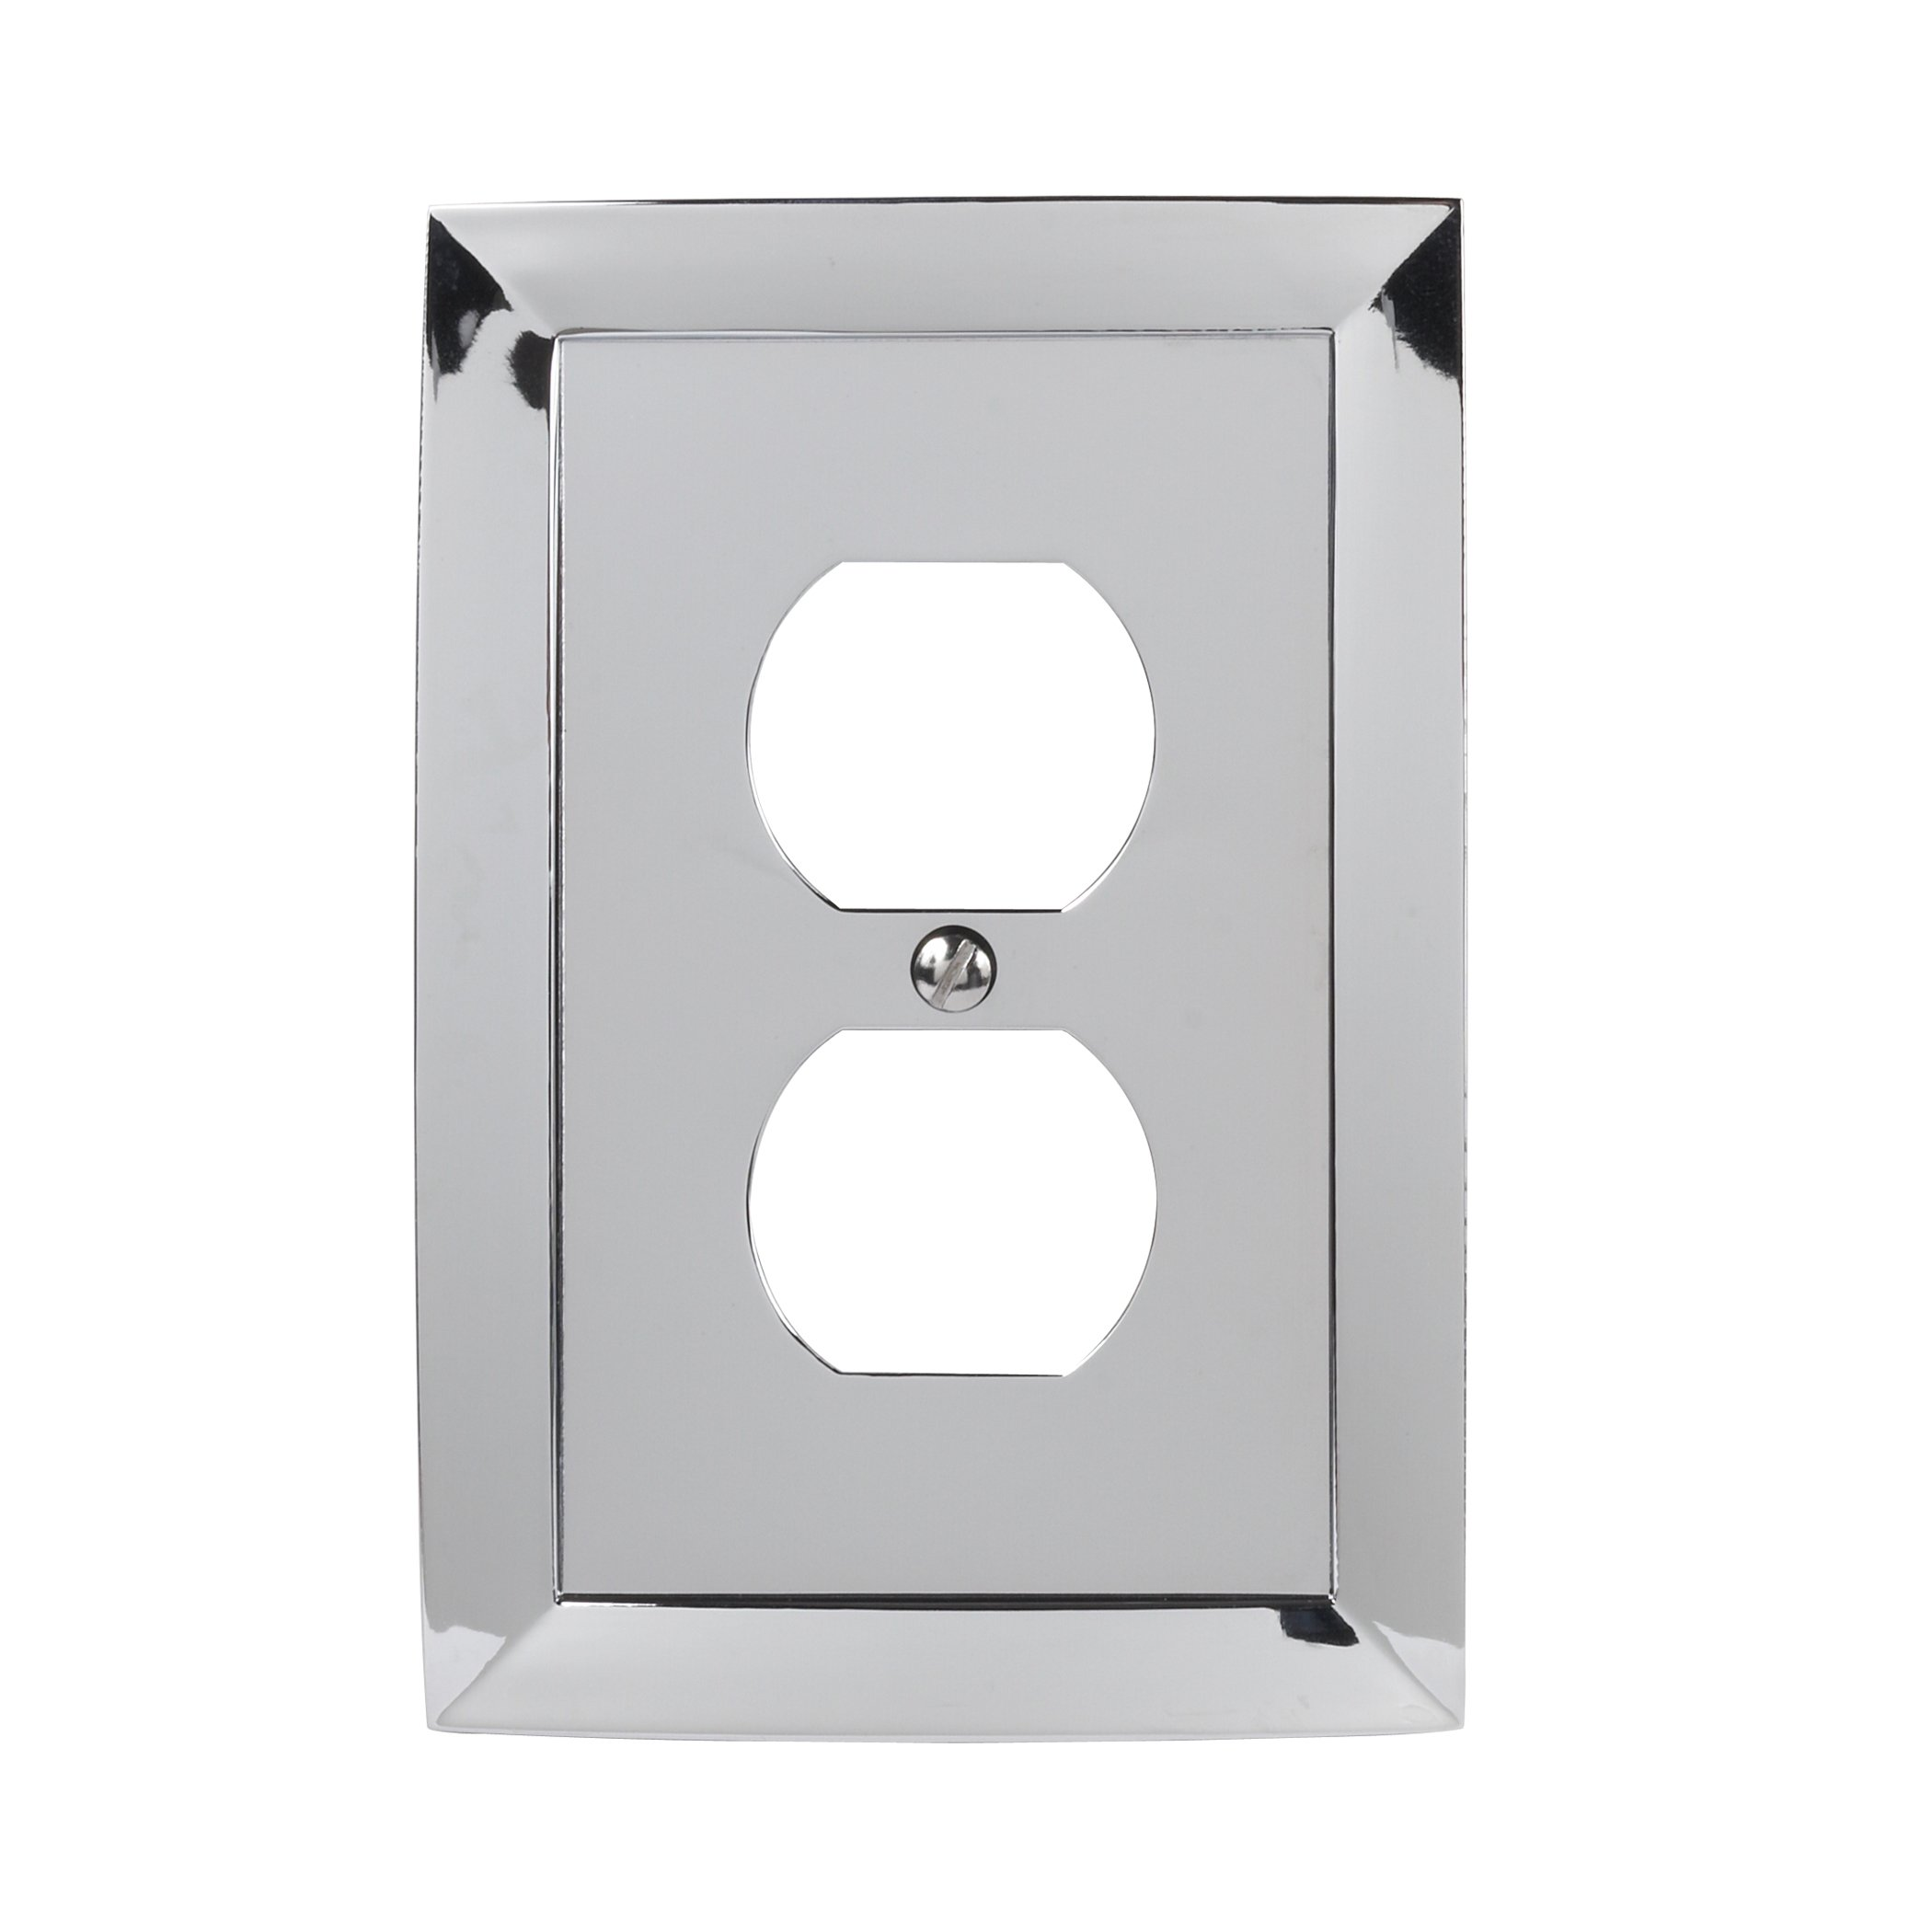 AmerTac 61DCH Amerelle Studio 1 Duplex Outlet Wallplate, Polished Chrome Cast